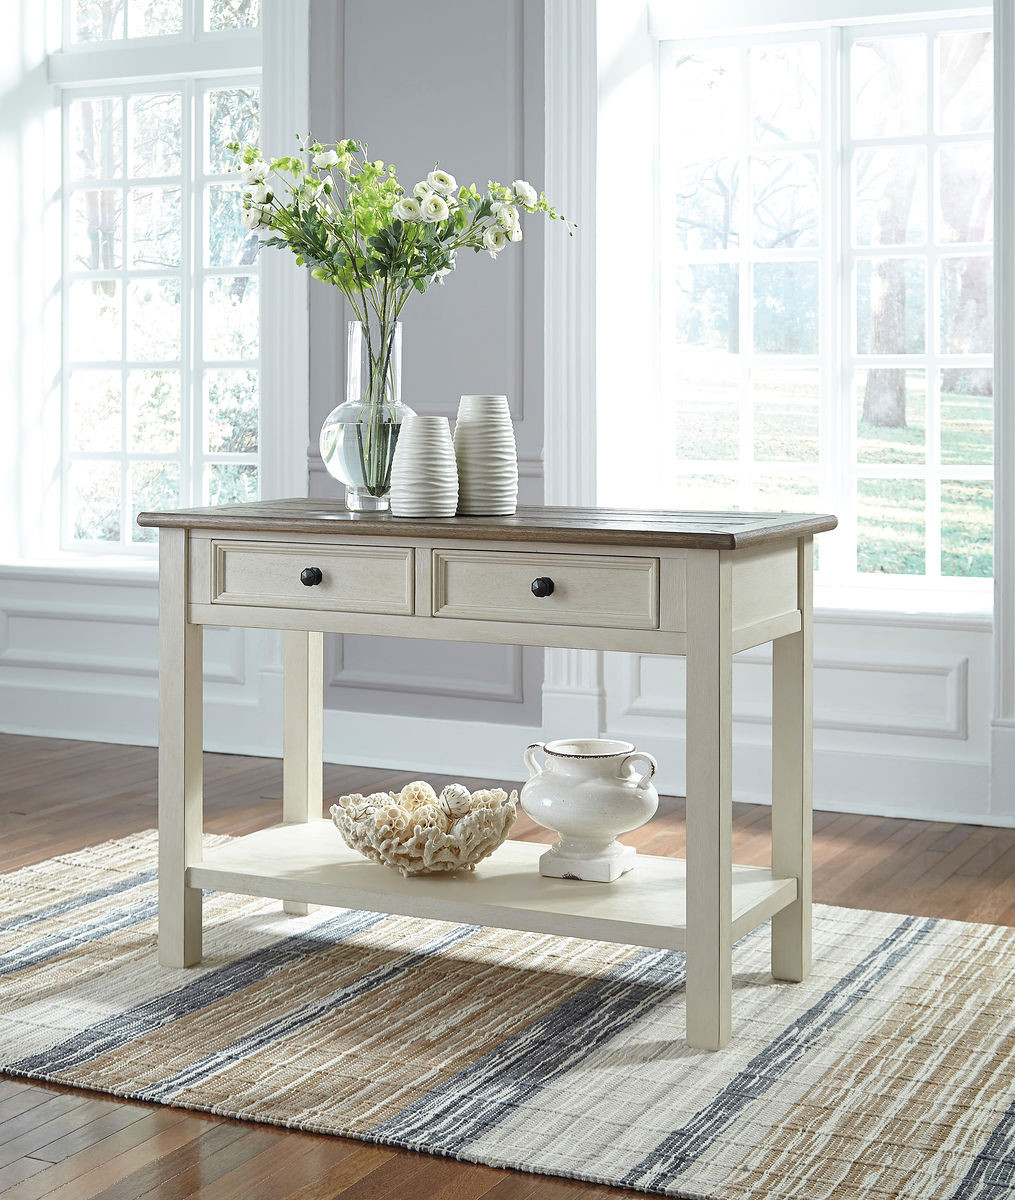 The Bolanburg Two-tone Sofa Table Available At Furniture